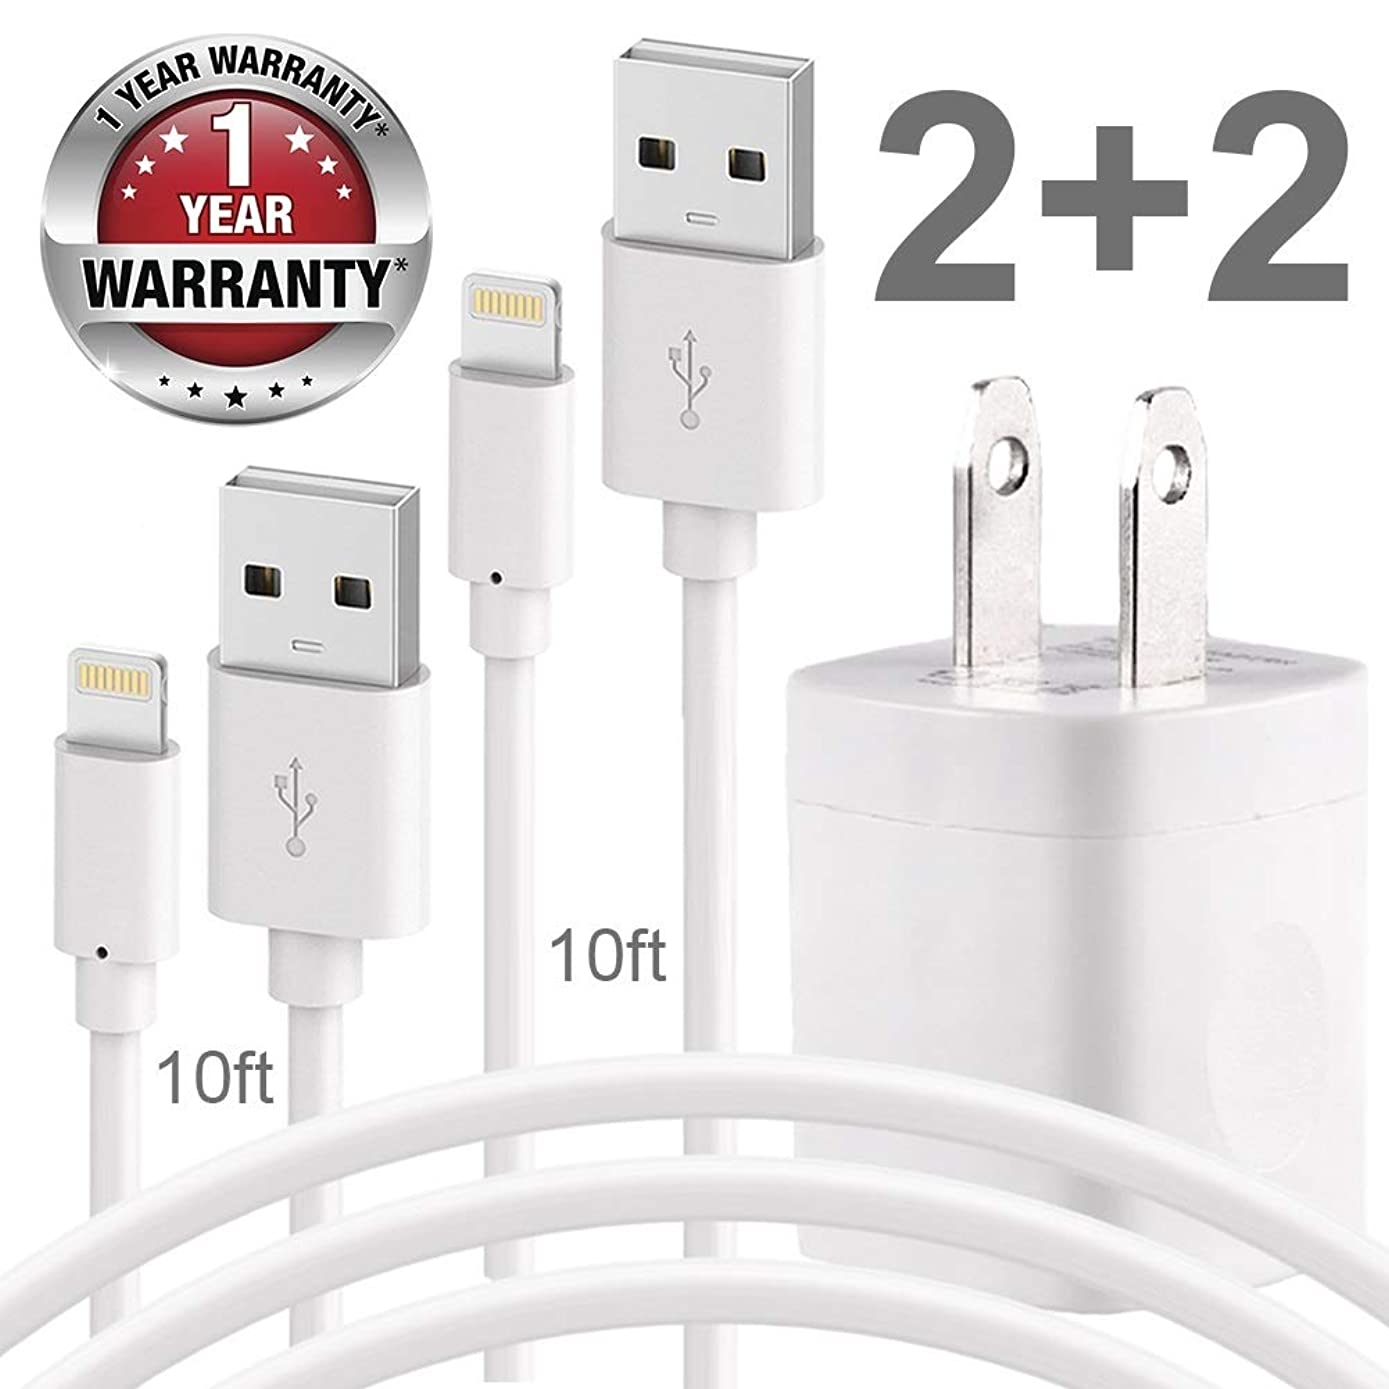 Charging Kit, Pack of two 10FT USB Data Sync Cord with Two AC Wall Phone Chargers Travel Power Plug Outlet Adapter Cube Compatible with Phone X 8 8Plus 7 6 6S 5 SE Plus Models Pod Pad and More - White